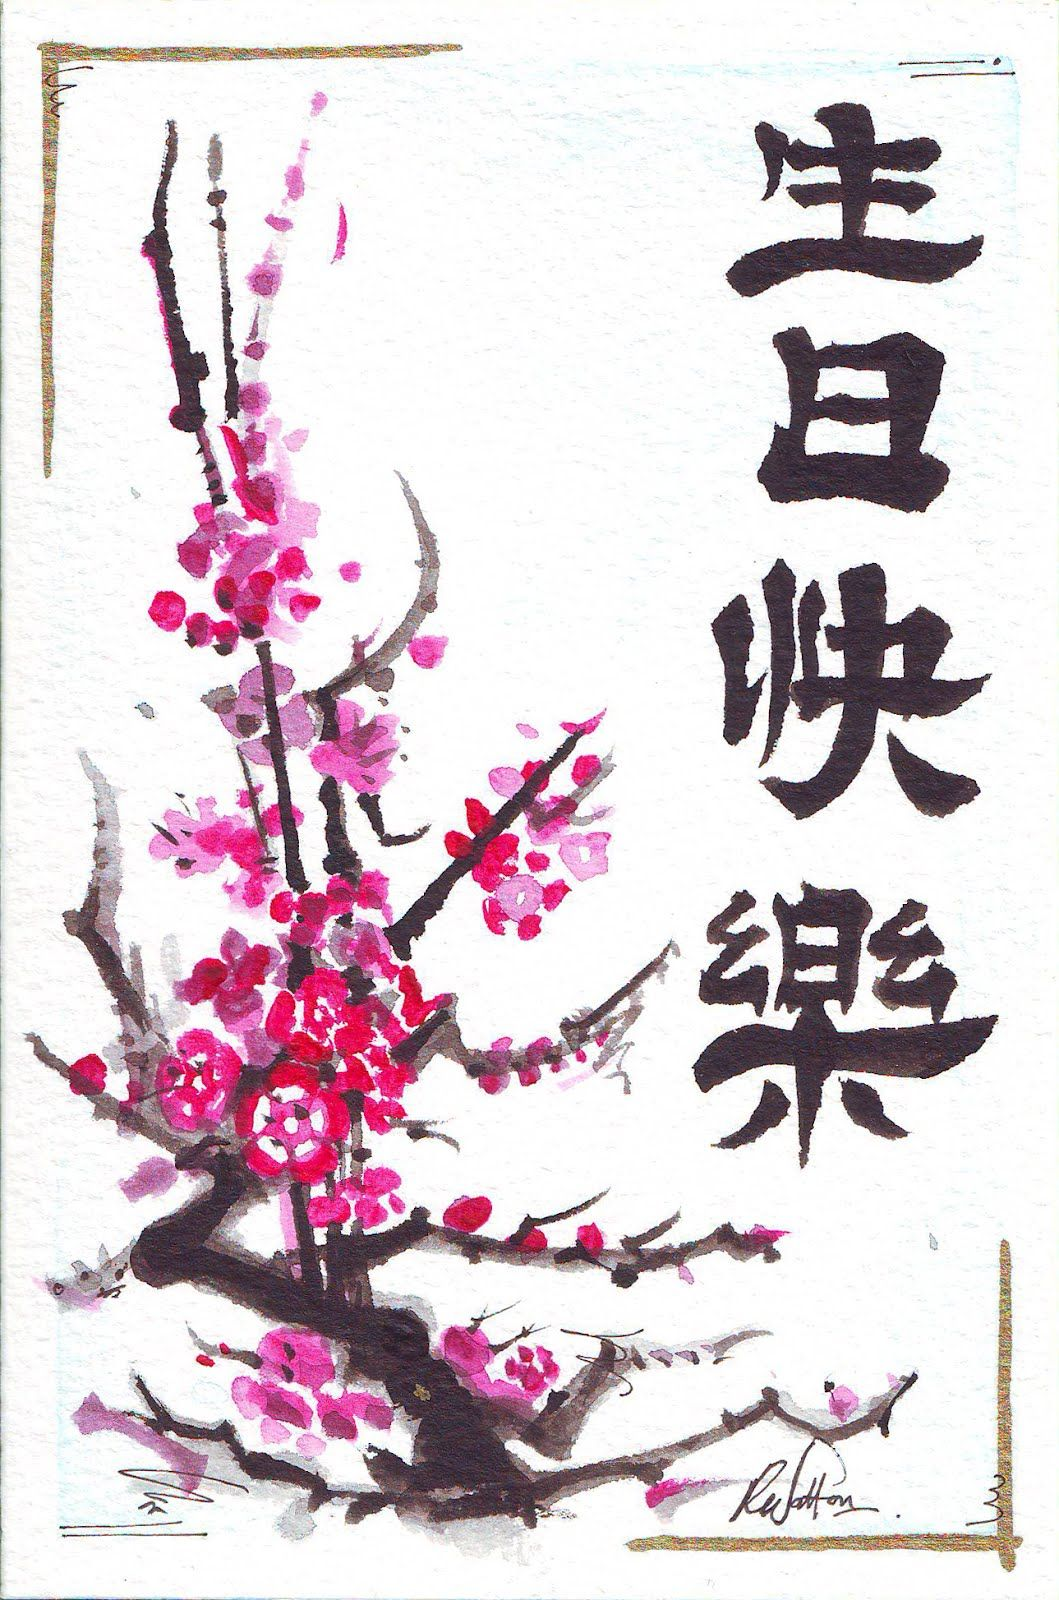 happy birthday in chinese image ; 0a11fb59294b157a51701588771aef21